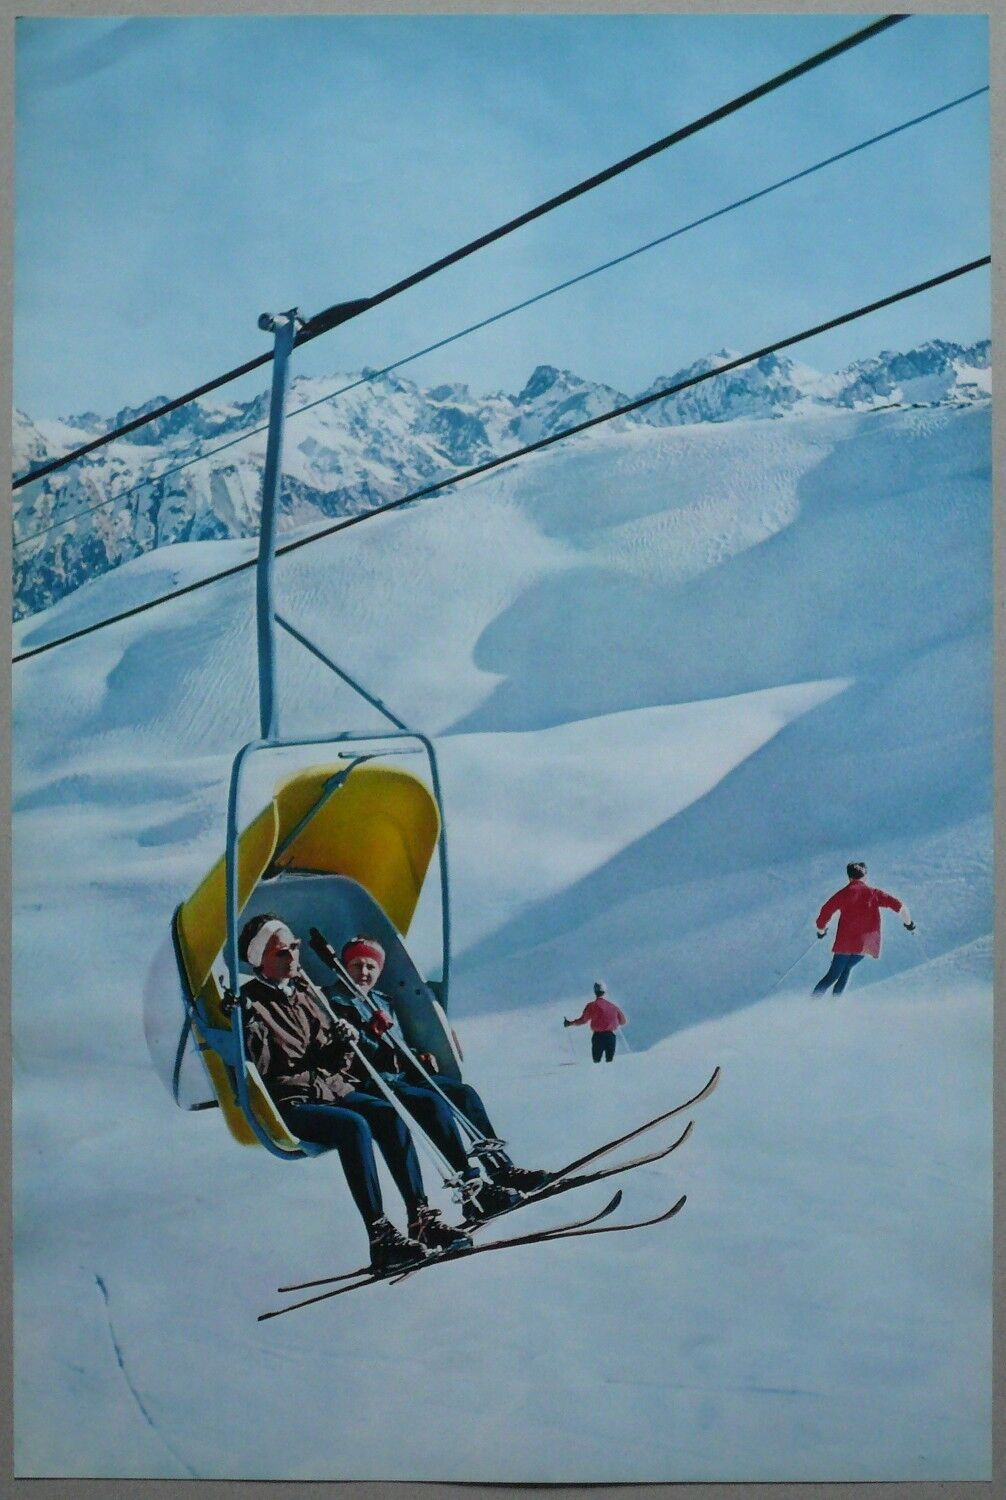 Old tourism poster ski the chairlift chairlift skiing vintage poster 60's